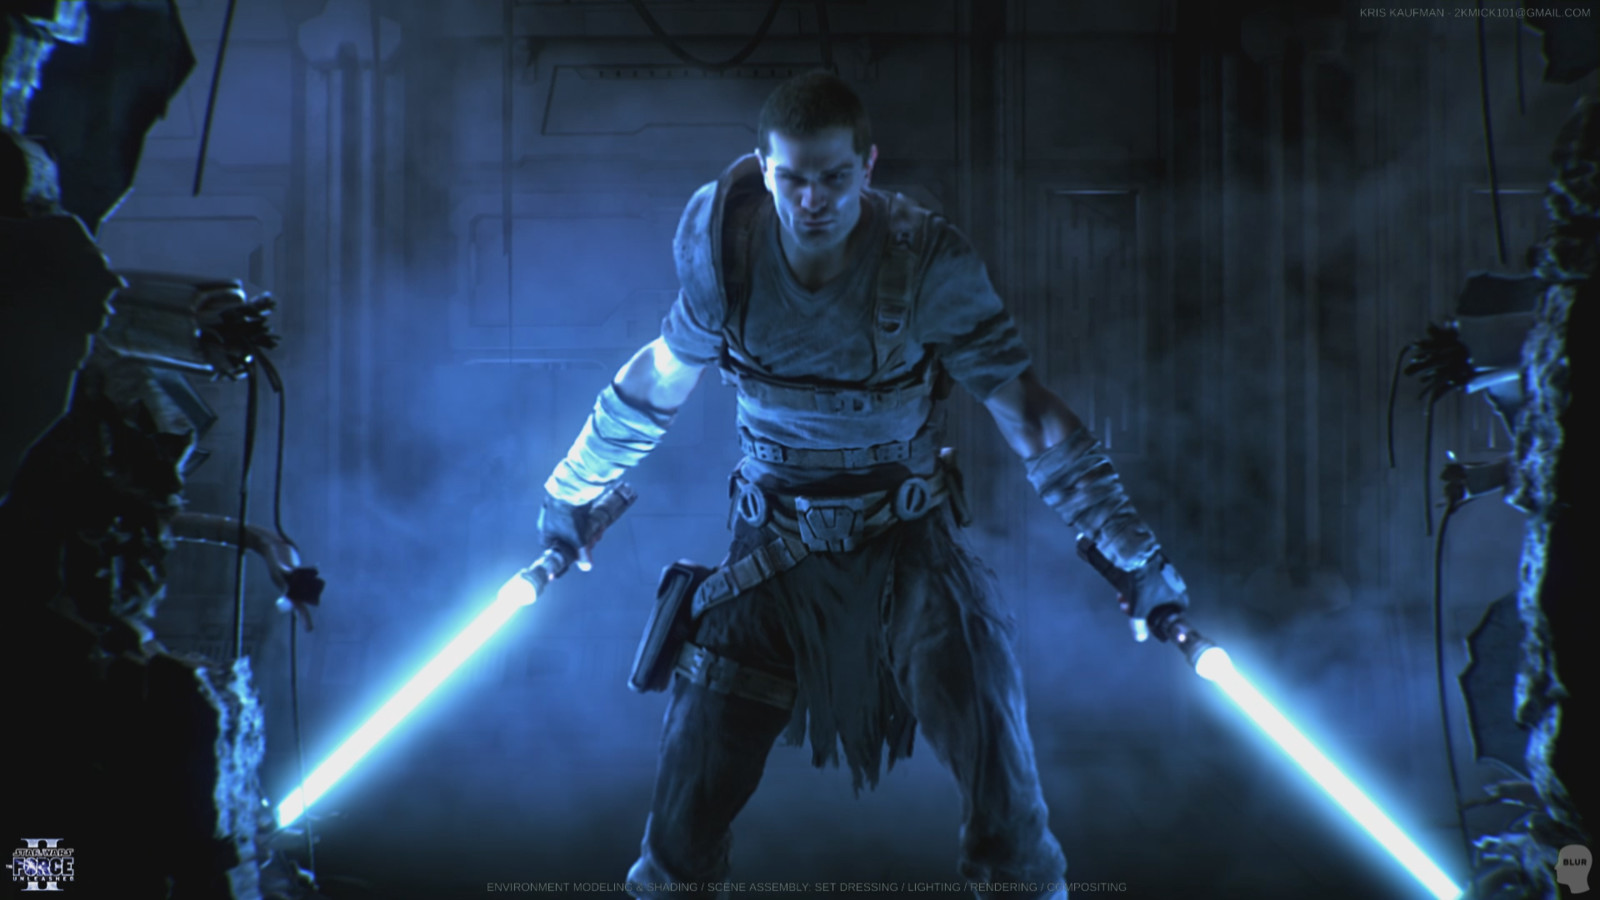 The Force Unleashed 2: Look Development / Environment Modeling & Shading / Lighting / Rendering / Compositing